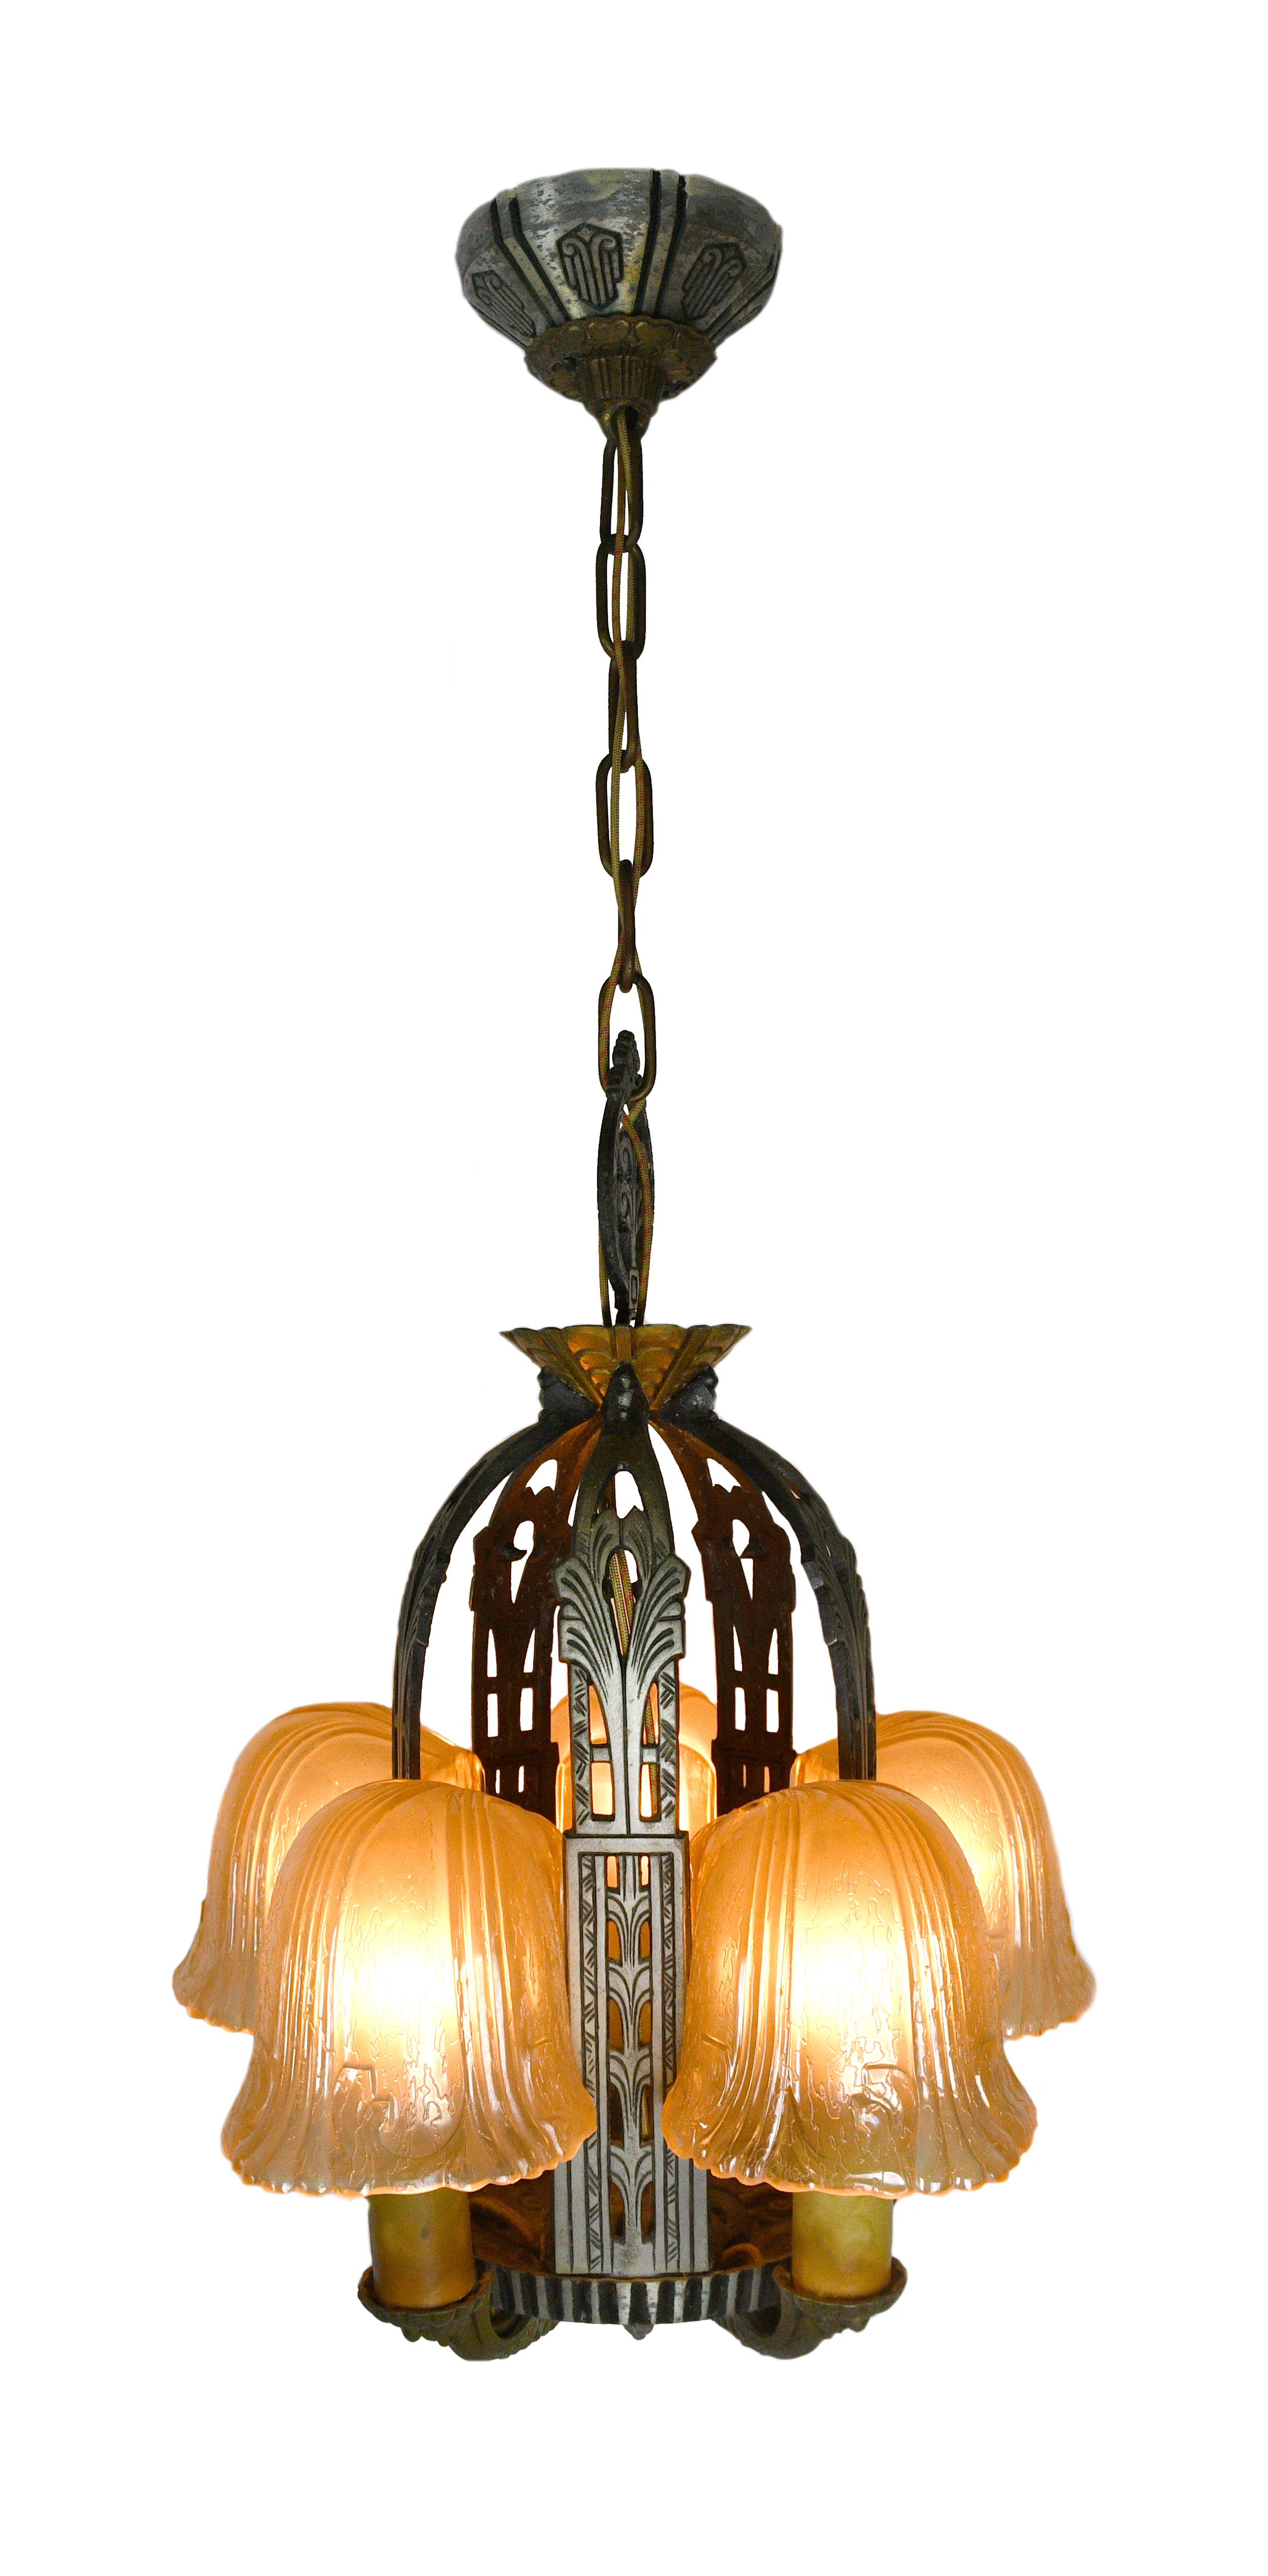 Riddle art deco 5 candle slip shade chandelier    Click here for more information